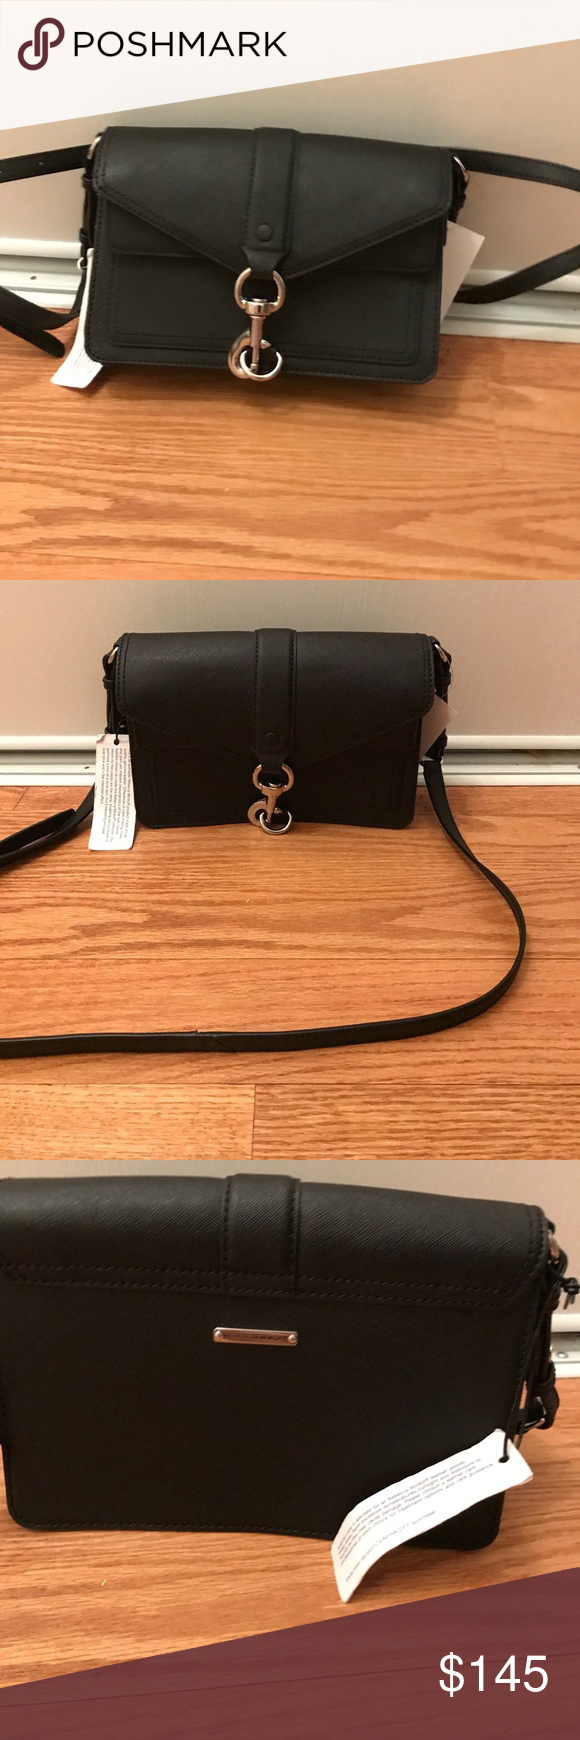 """RebeccaMinkoff MiniMoto Saffiano Leather Crossbody Rebecca Minkoff Hudson saffiano leather bag Silvertone hardware; adjustable shoulder strap, 20"""" drop-Flat top with lobster clasp closure-flap pocket with magnetic closure-dual compartments-one slip pocket. 5.8""""H x 8.8""""W x 2.8""""D Rebecca Minkoff Bags Crossbody Bags"""